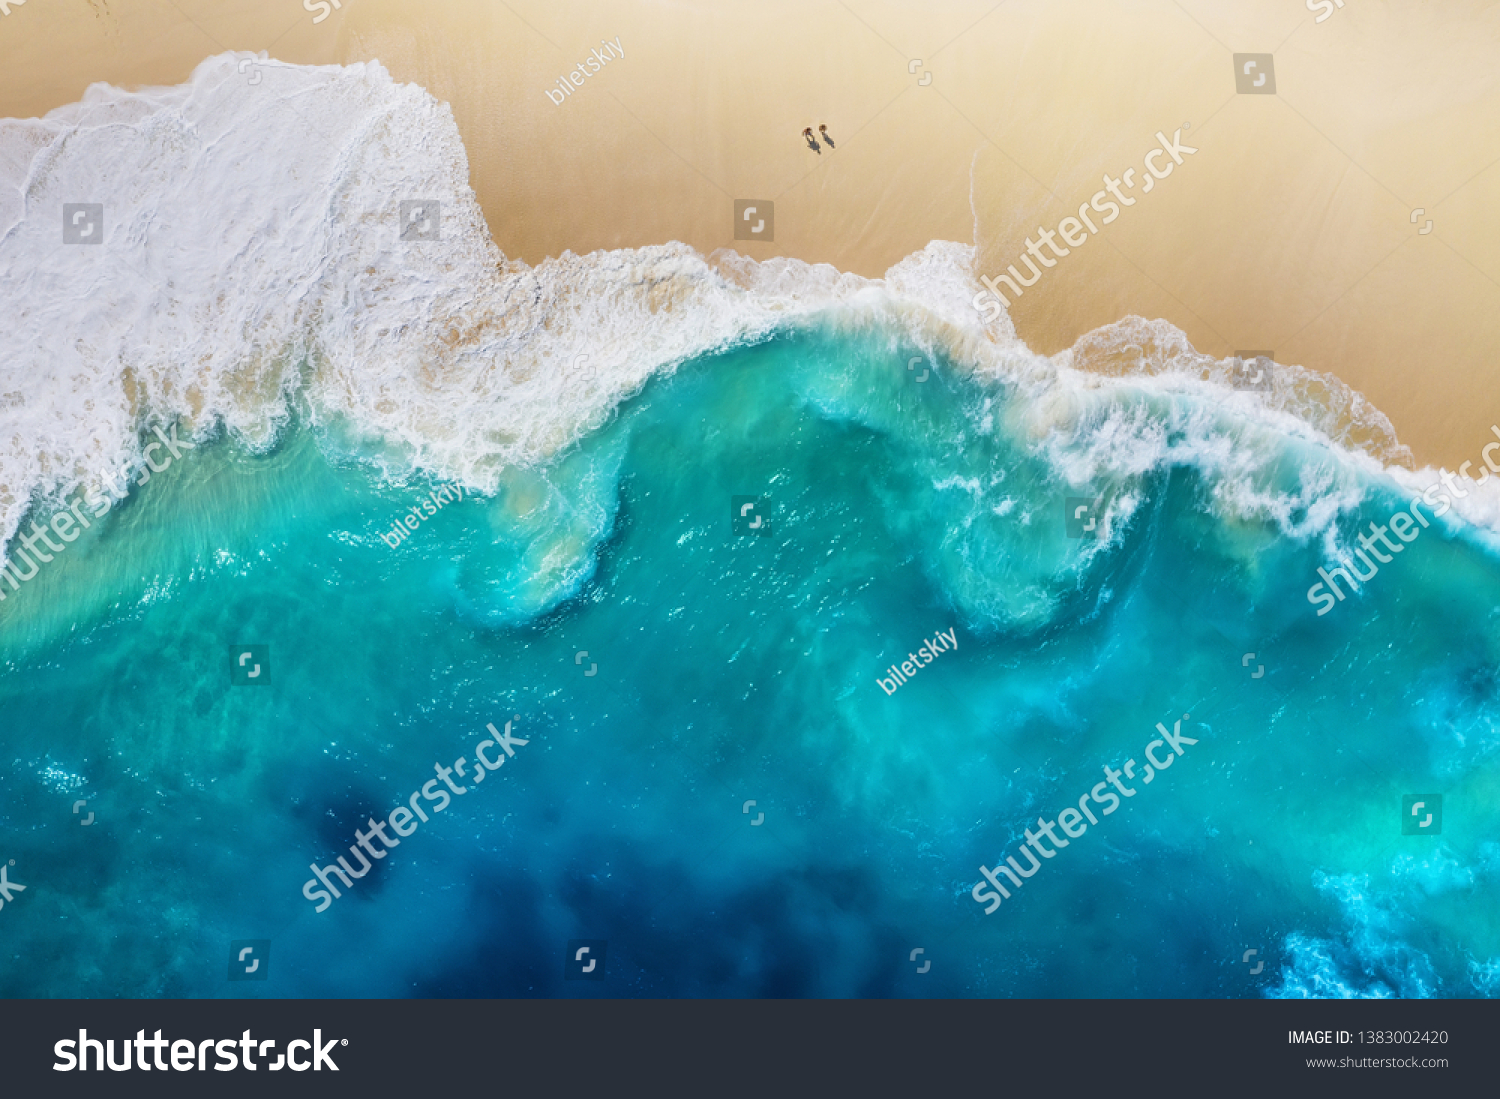 Coast as a background from top view. Turquoise water background from top view. Summer seascape from air. Nusa Penida island, Indonesia. Travel - image #1383002420